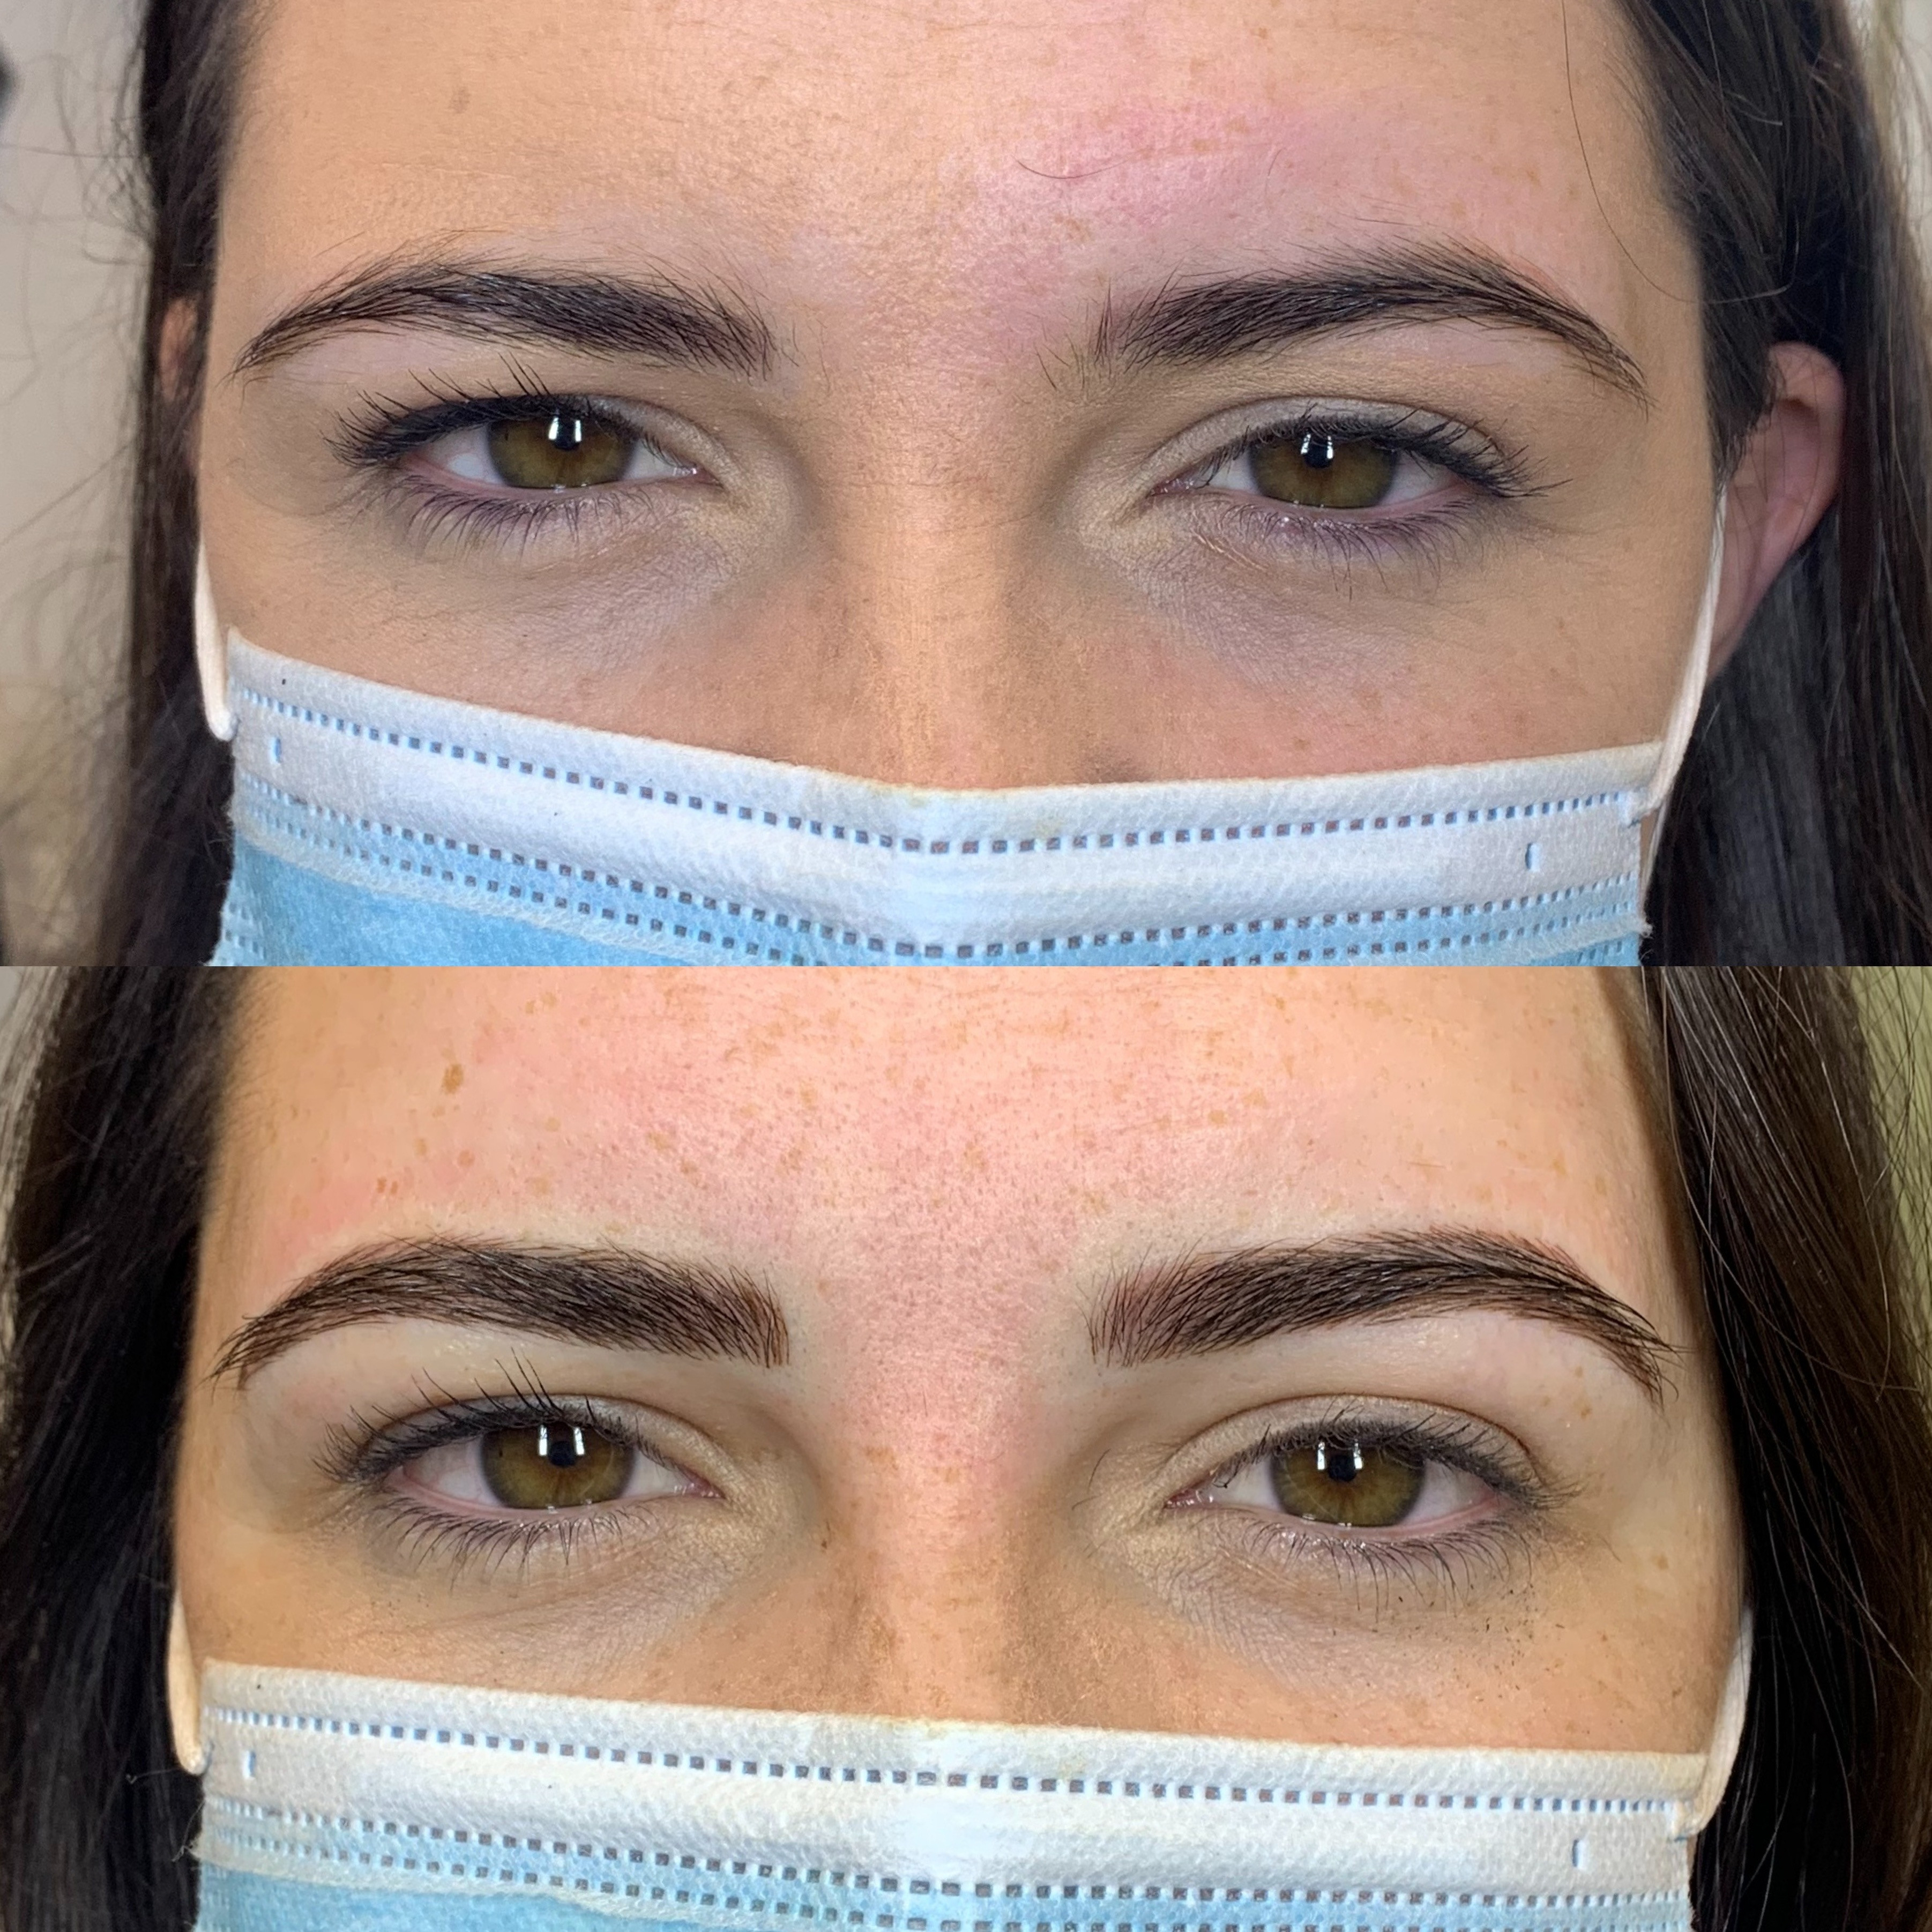 Microblading (Includes 4-6 week top up)